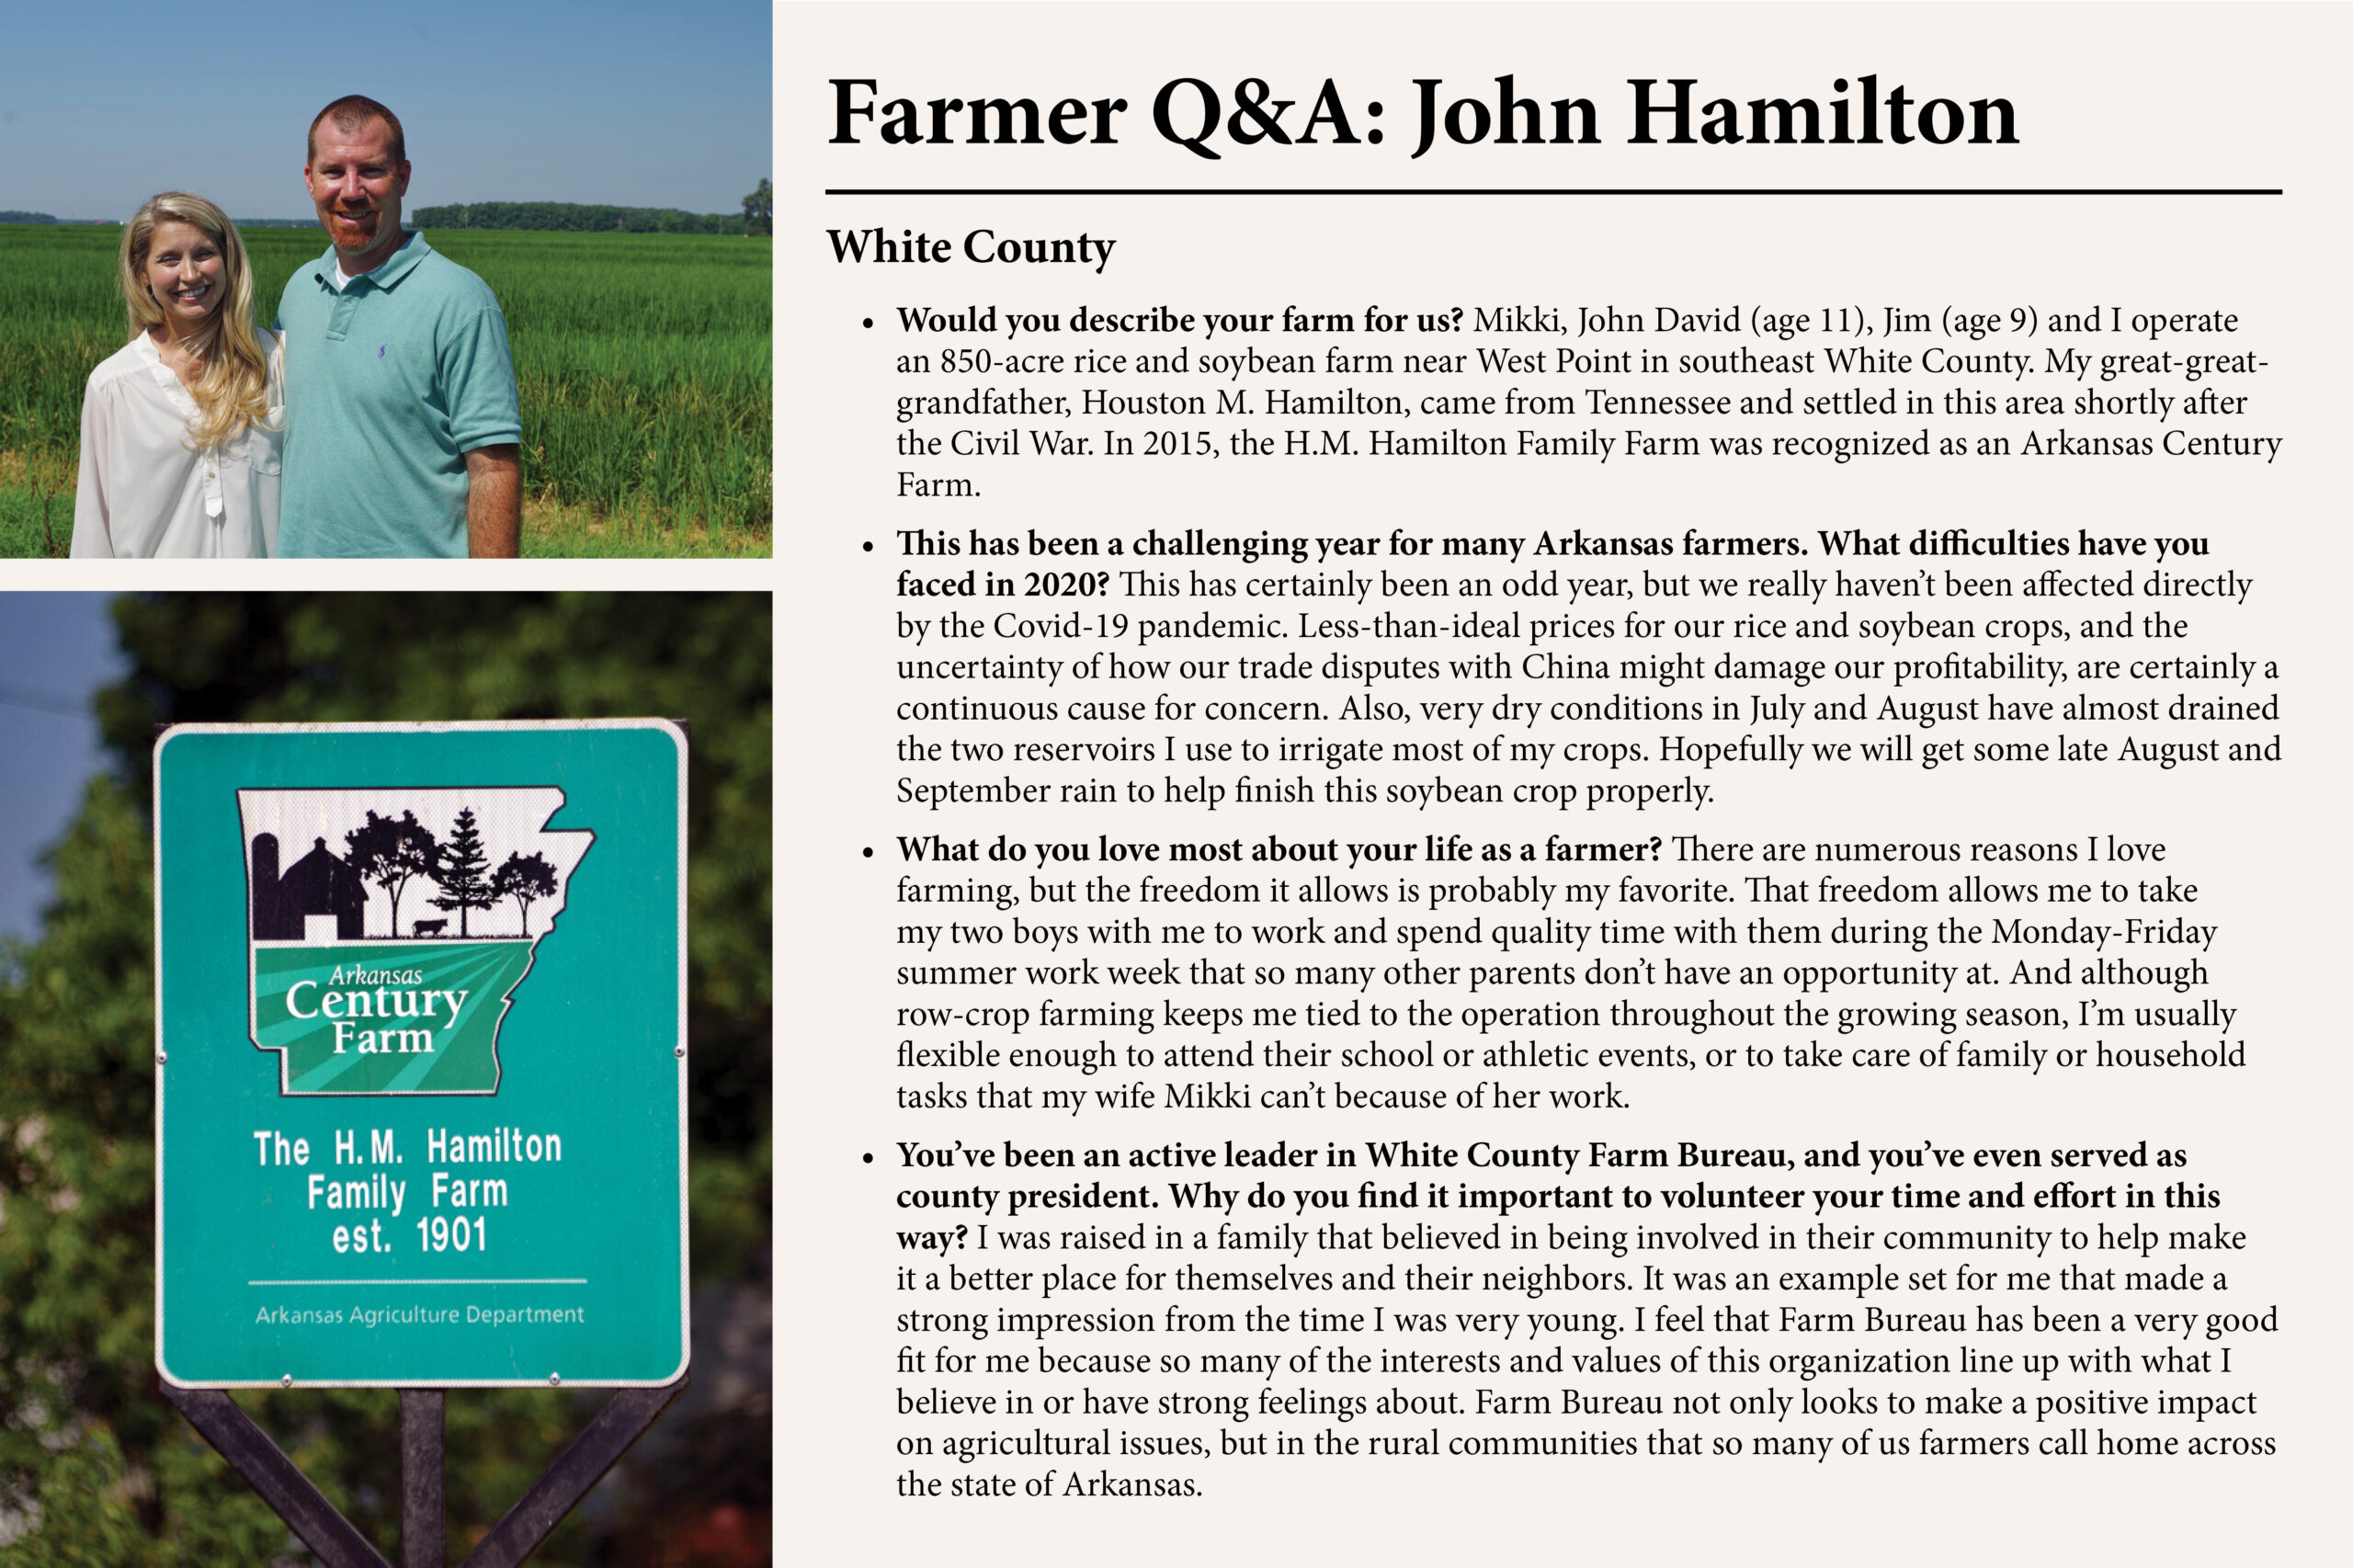 Get to know White County farmer John Hamilton and his family with these questions and answers.